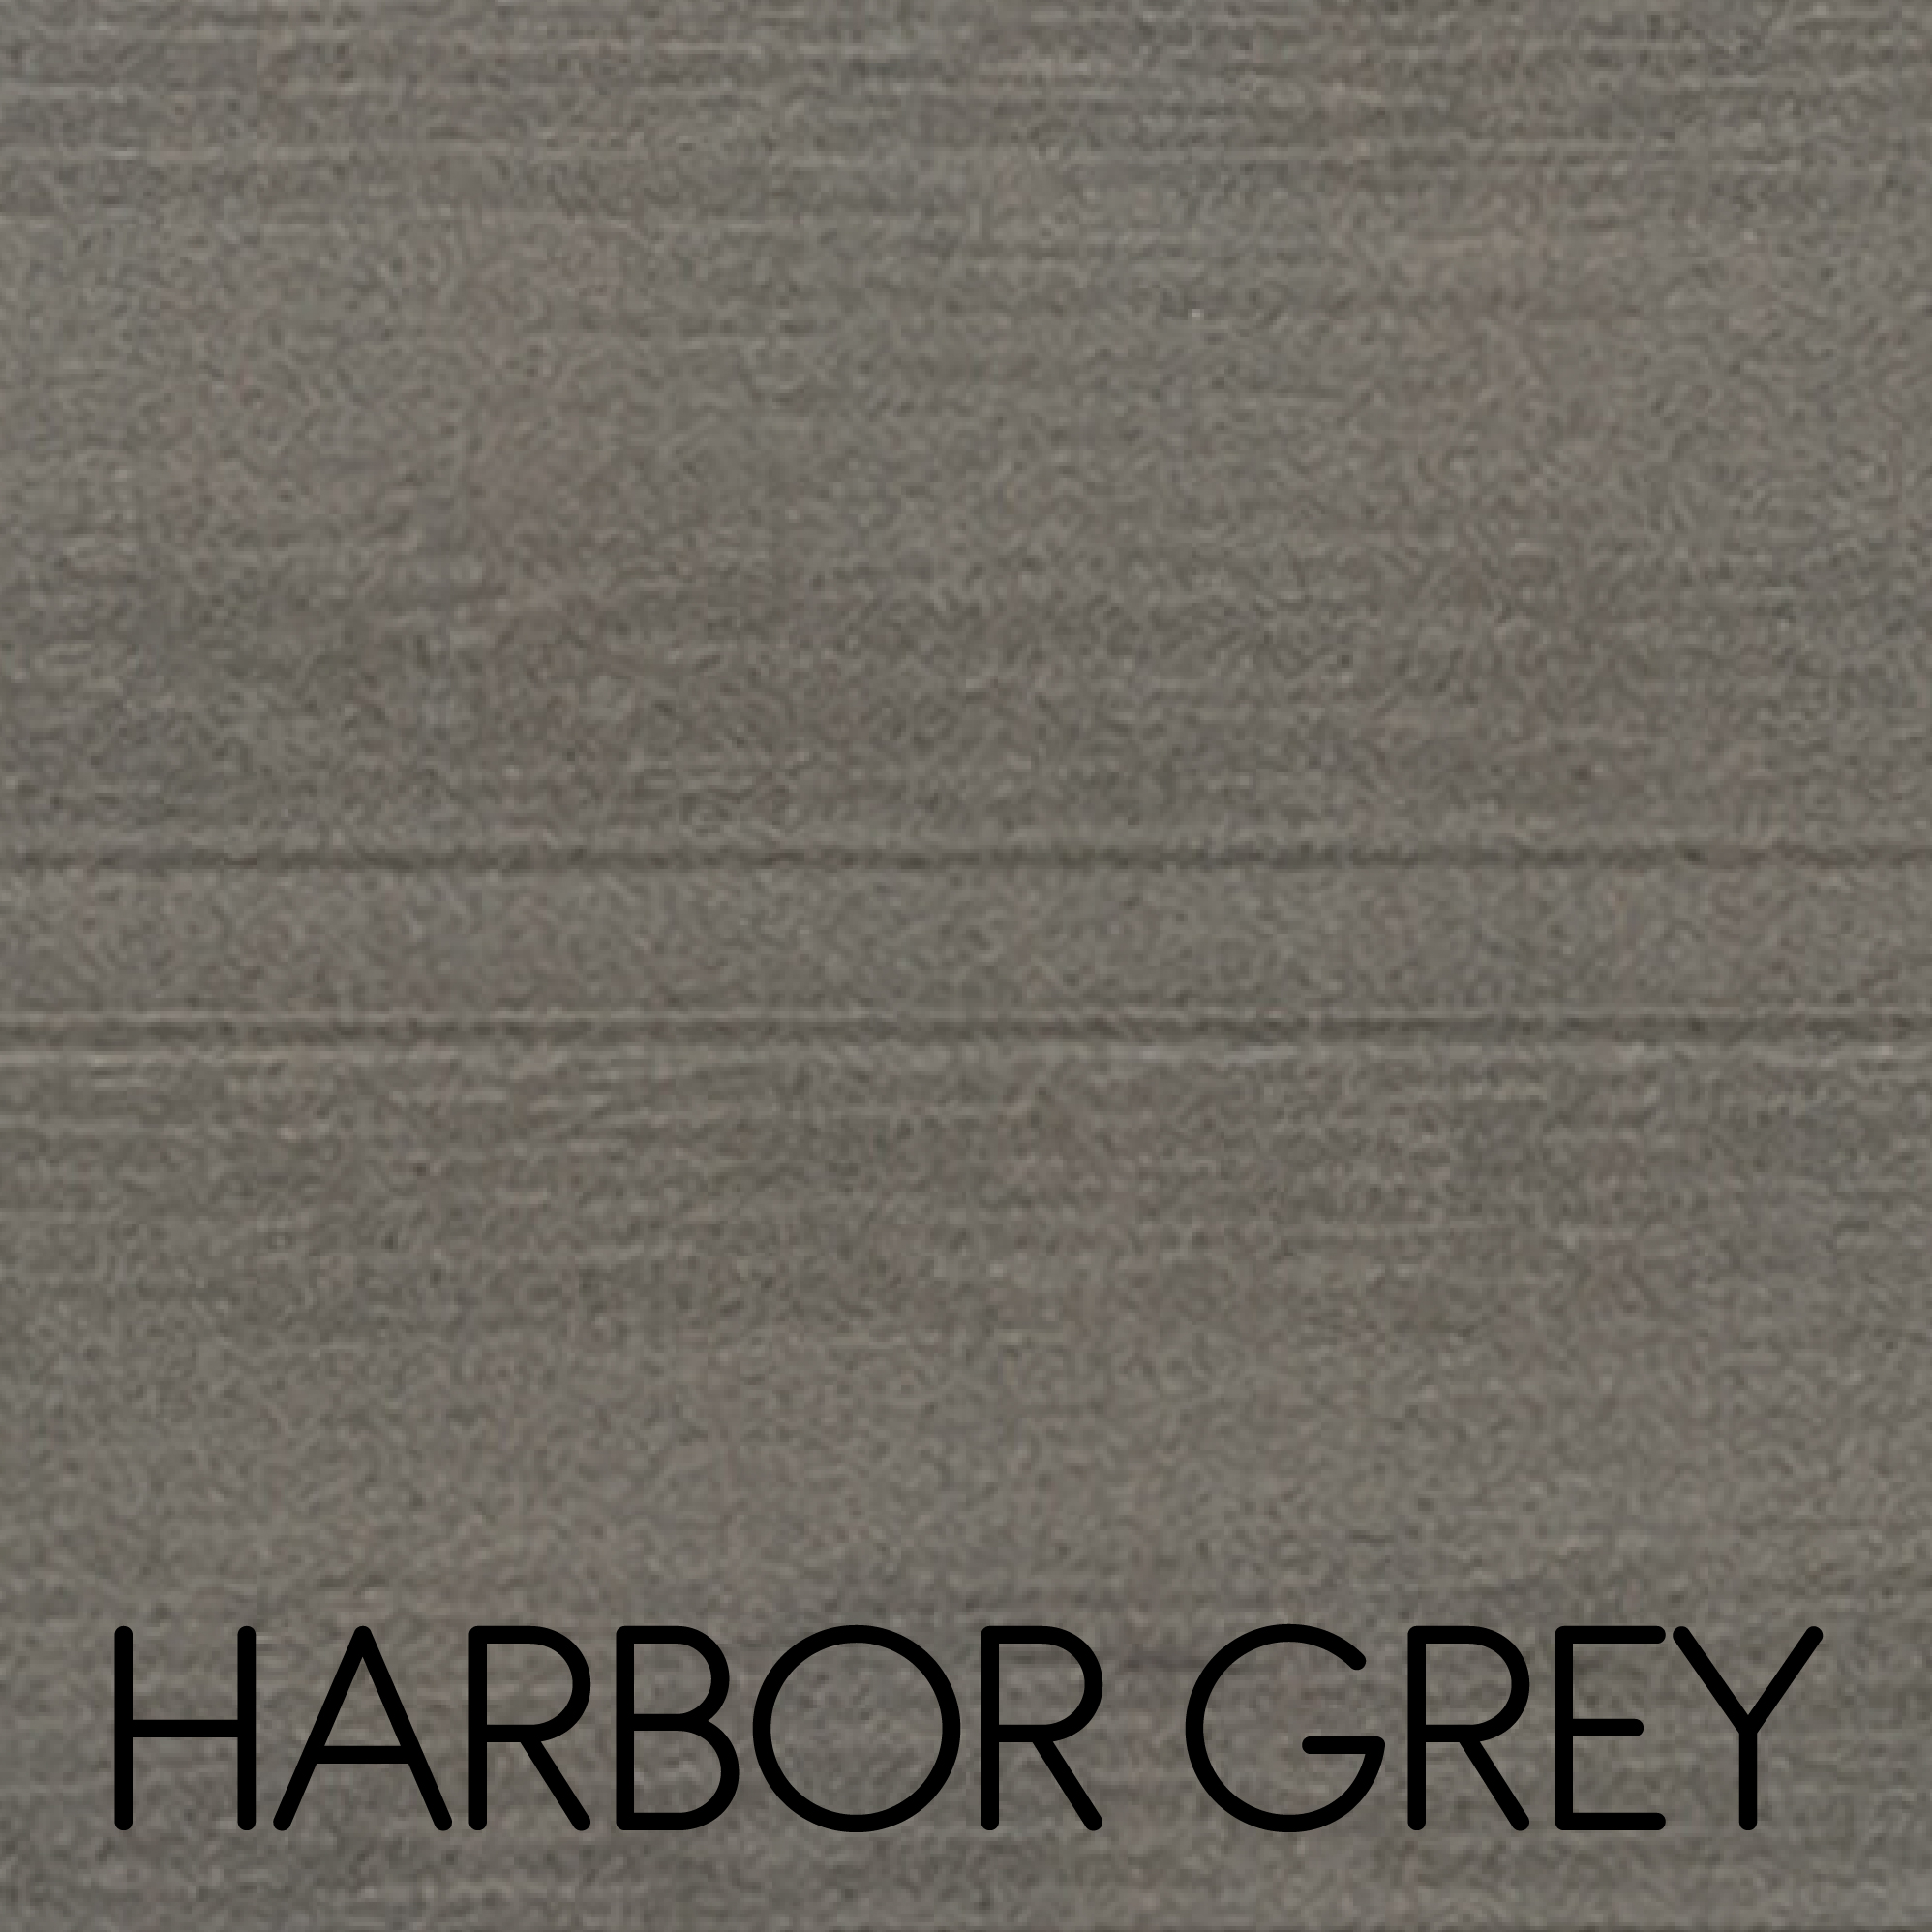 HARBOR GREY-01.jpg